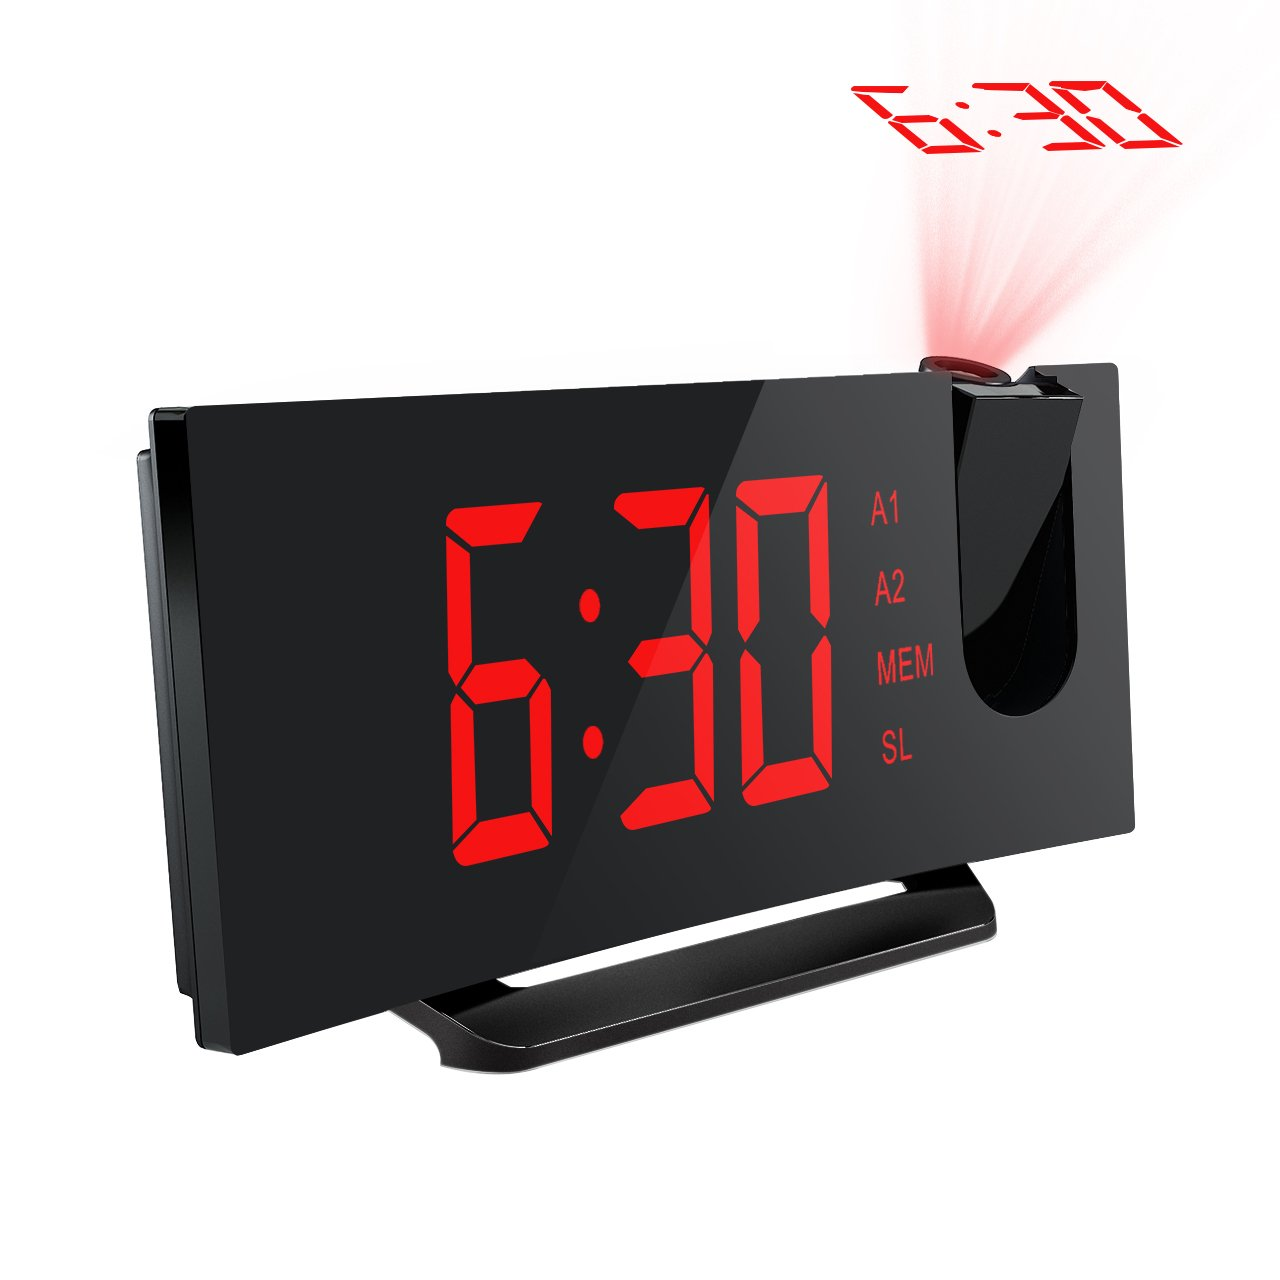 Mpow 5'' Projection Alarm Clock, FM Radio Alarm Clock with Dual Alarm, Digital Clock with 3 Dimmer Display for Bedroom, Ceiling, USB Charging Port, Backup Battery for Setting (Red)